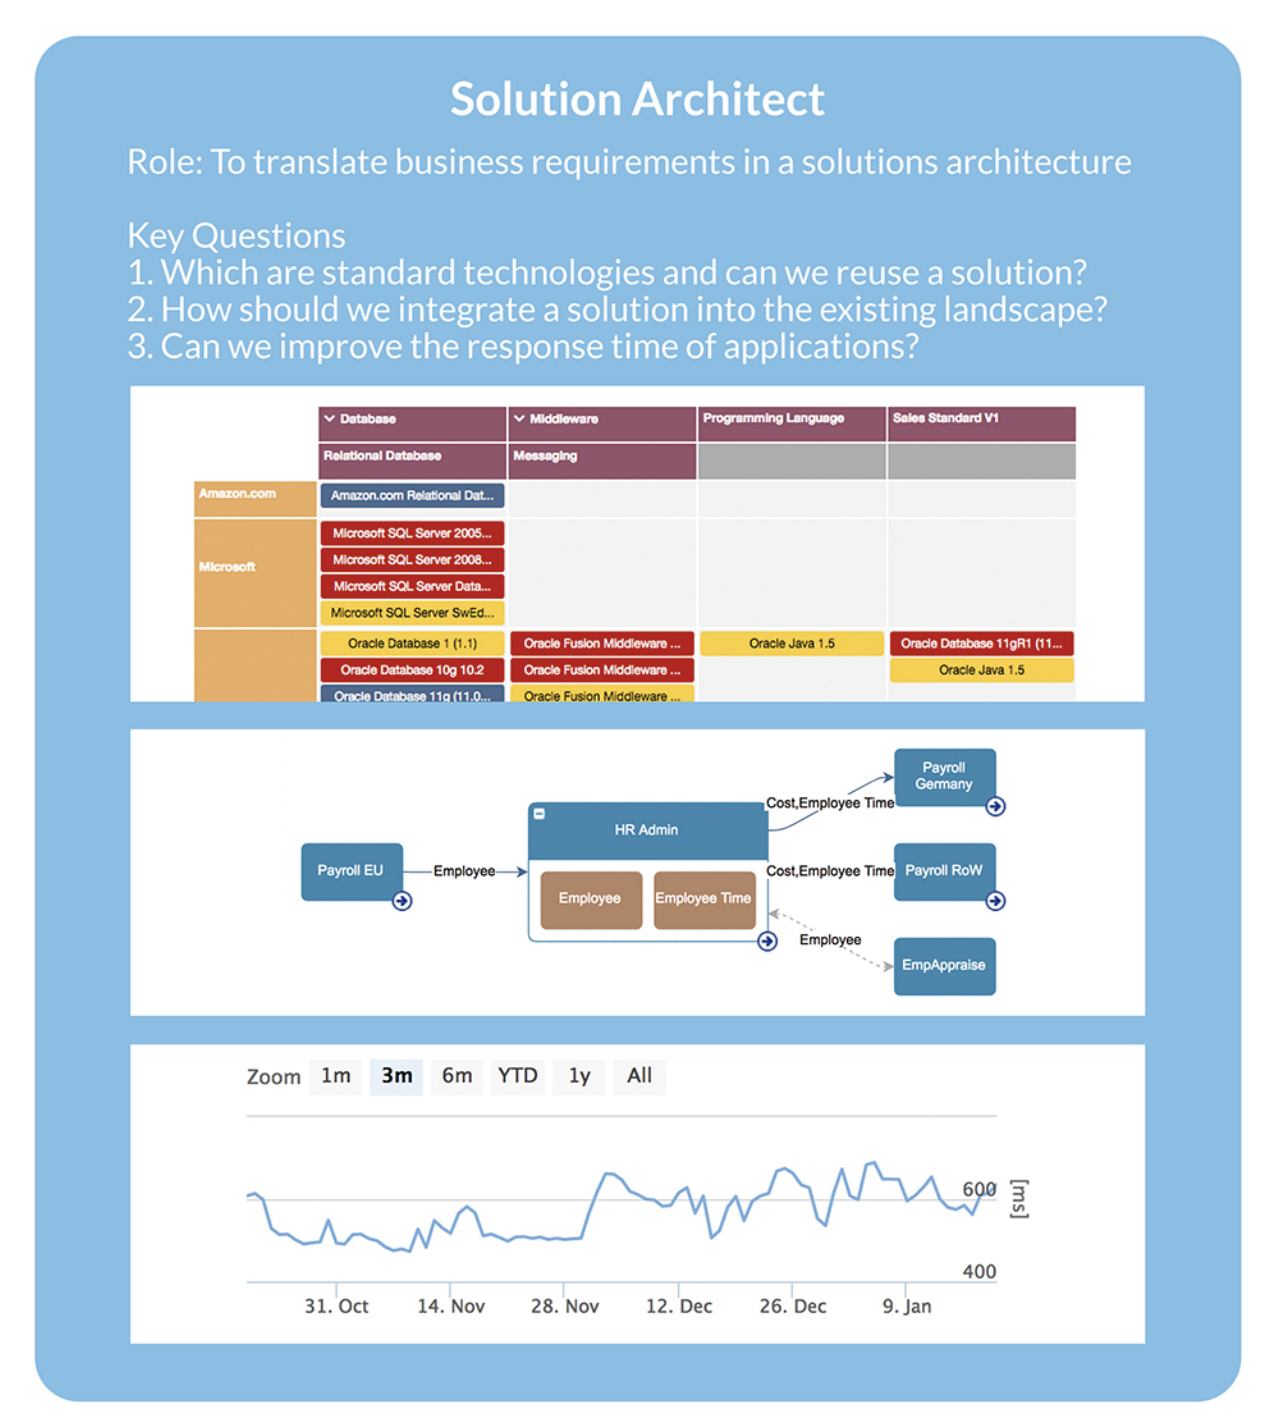 enterprise architect solution architect questions